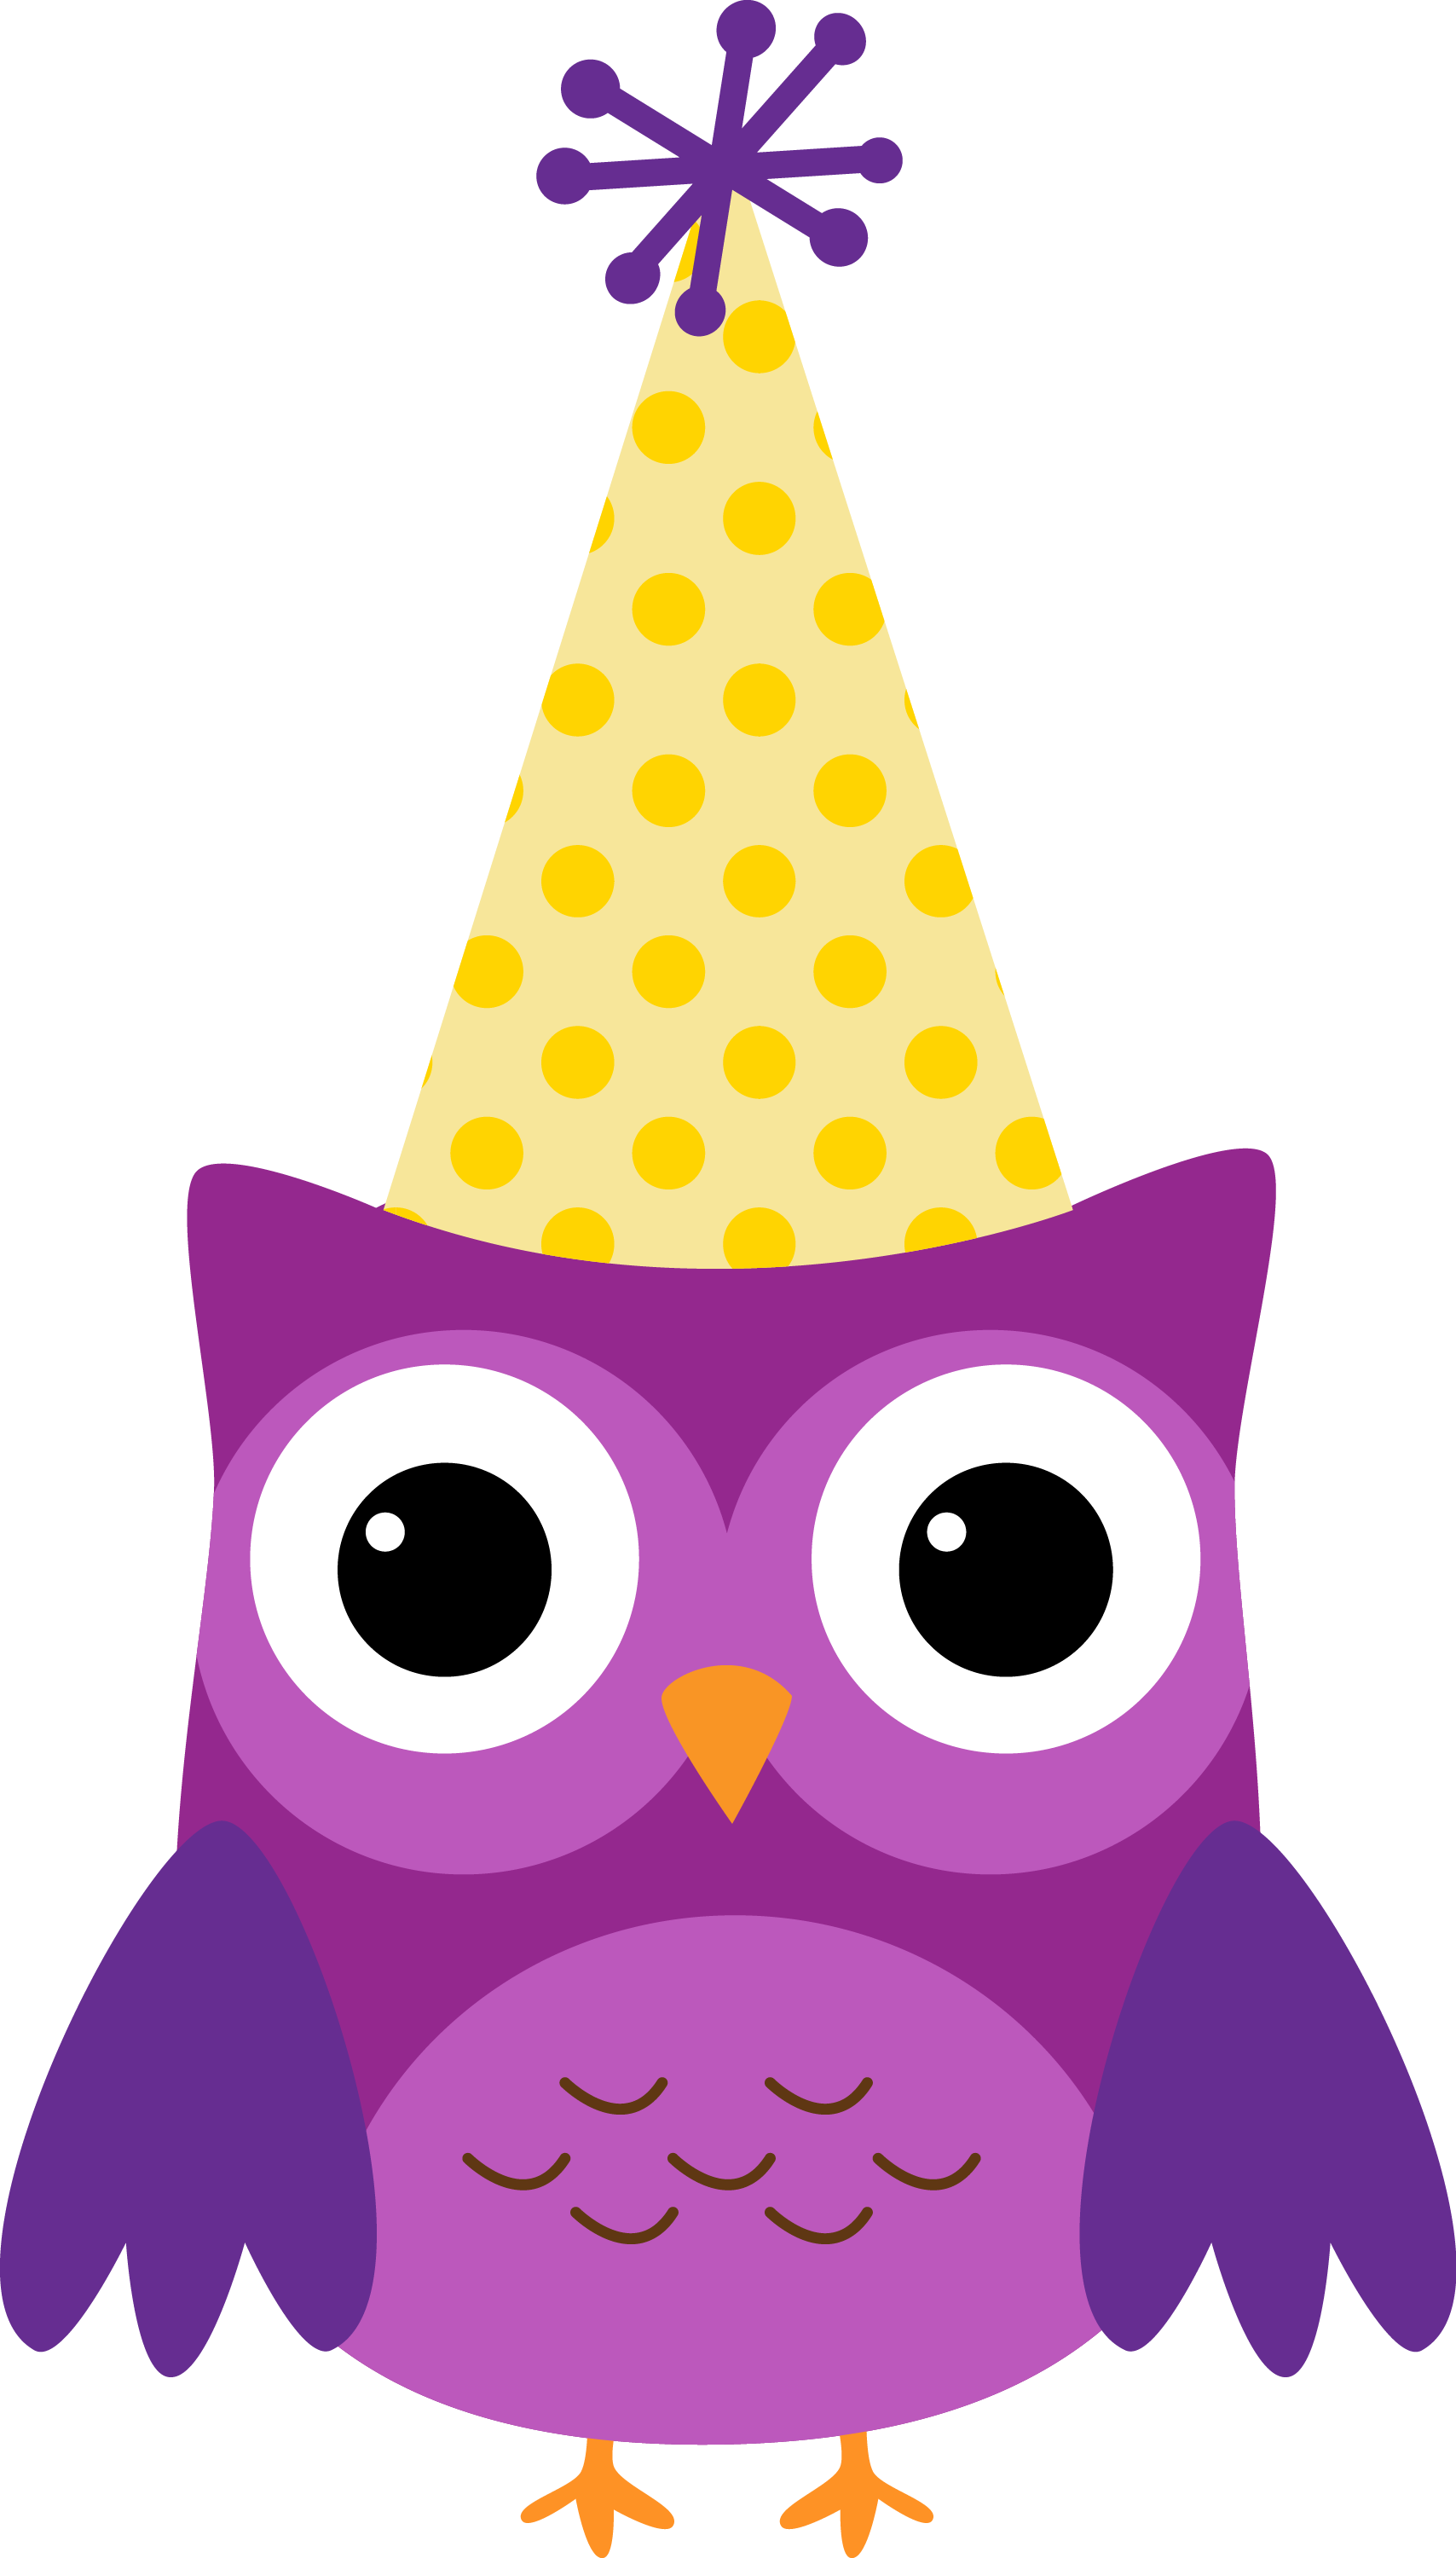 Owl birthday clipart svg free stock Owl birthday clipart 1 » Clipart Station svg free stock